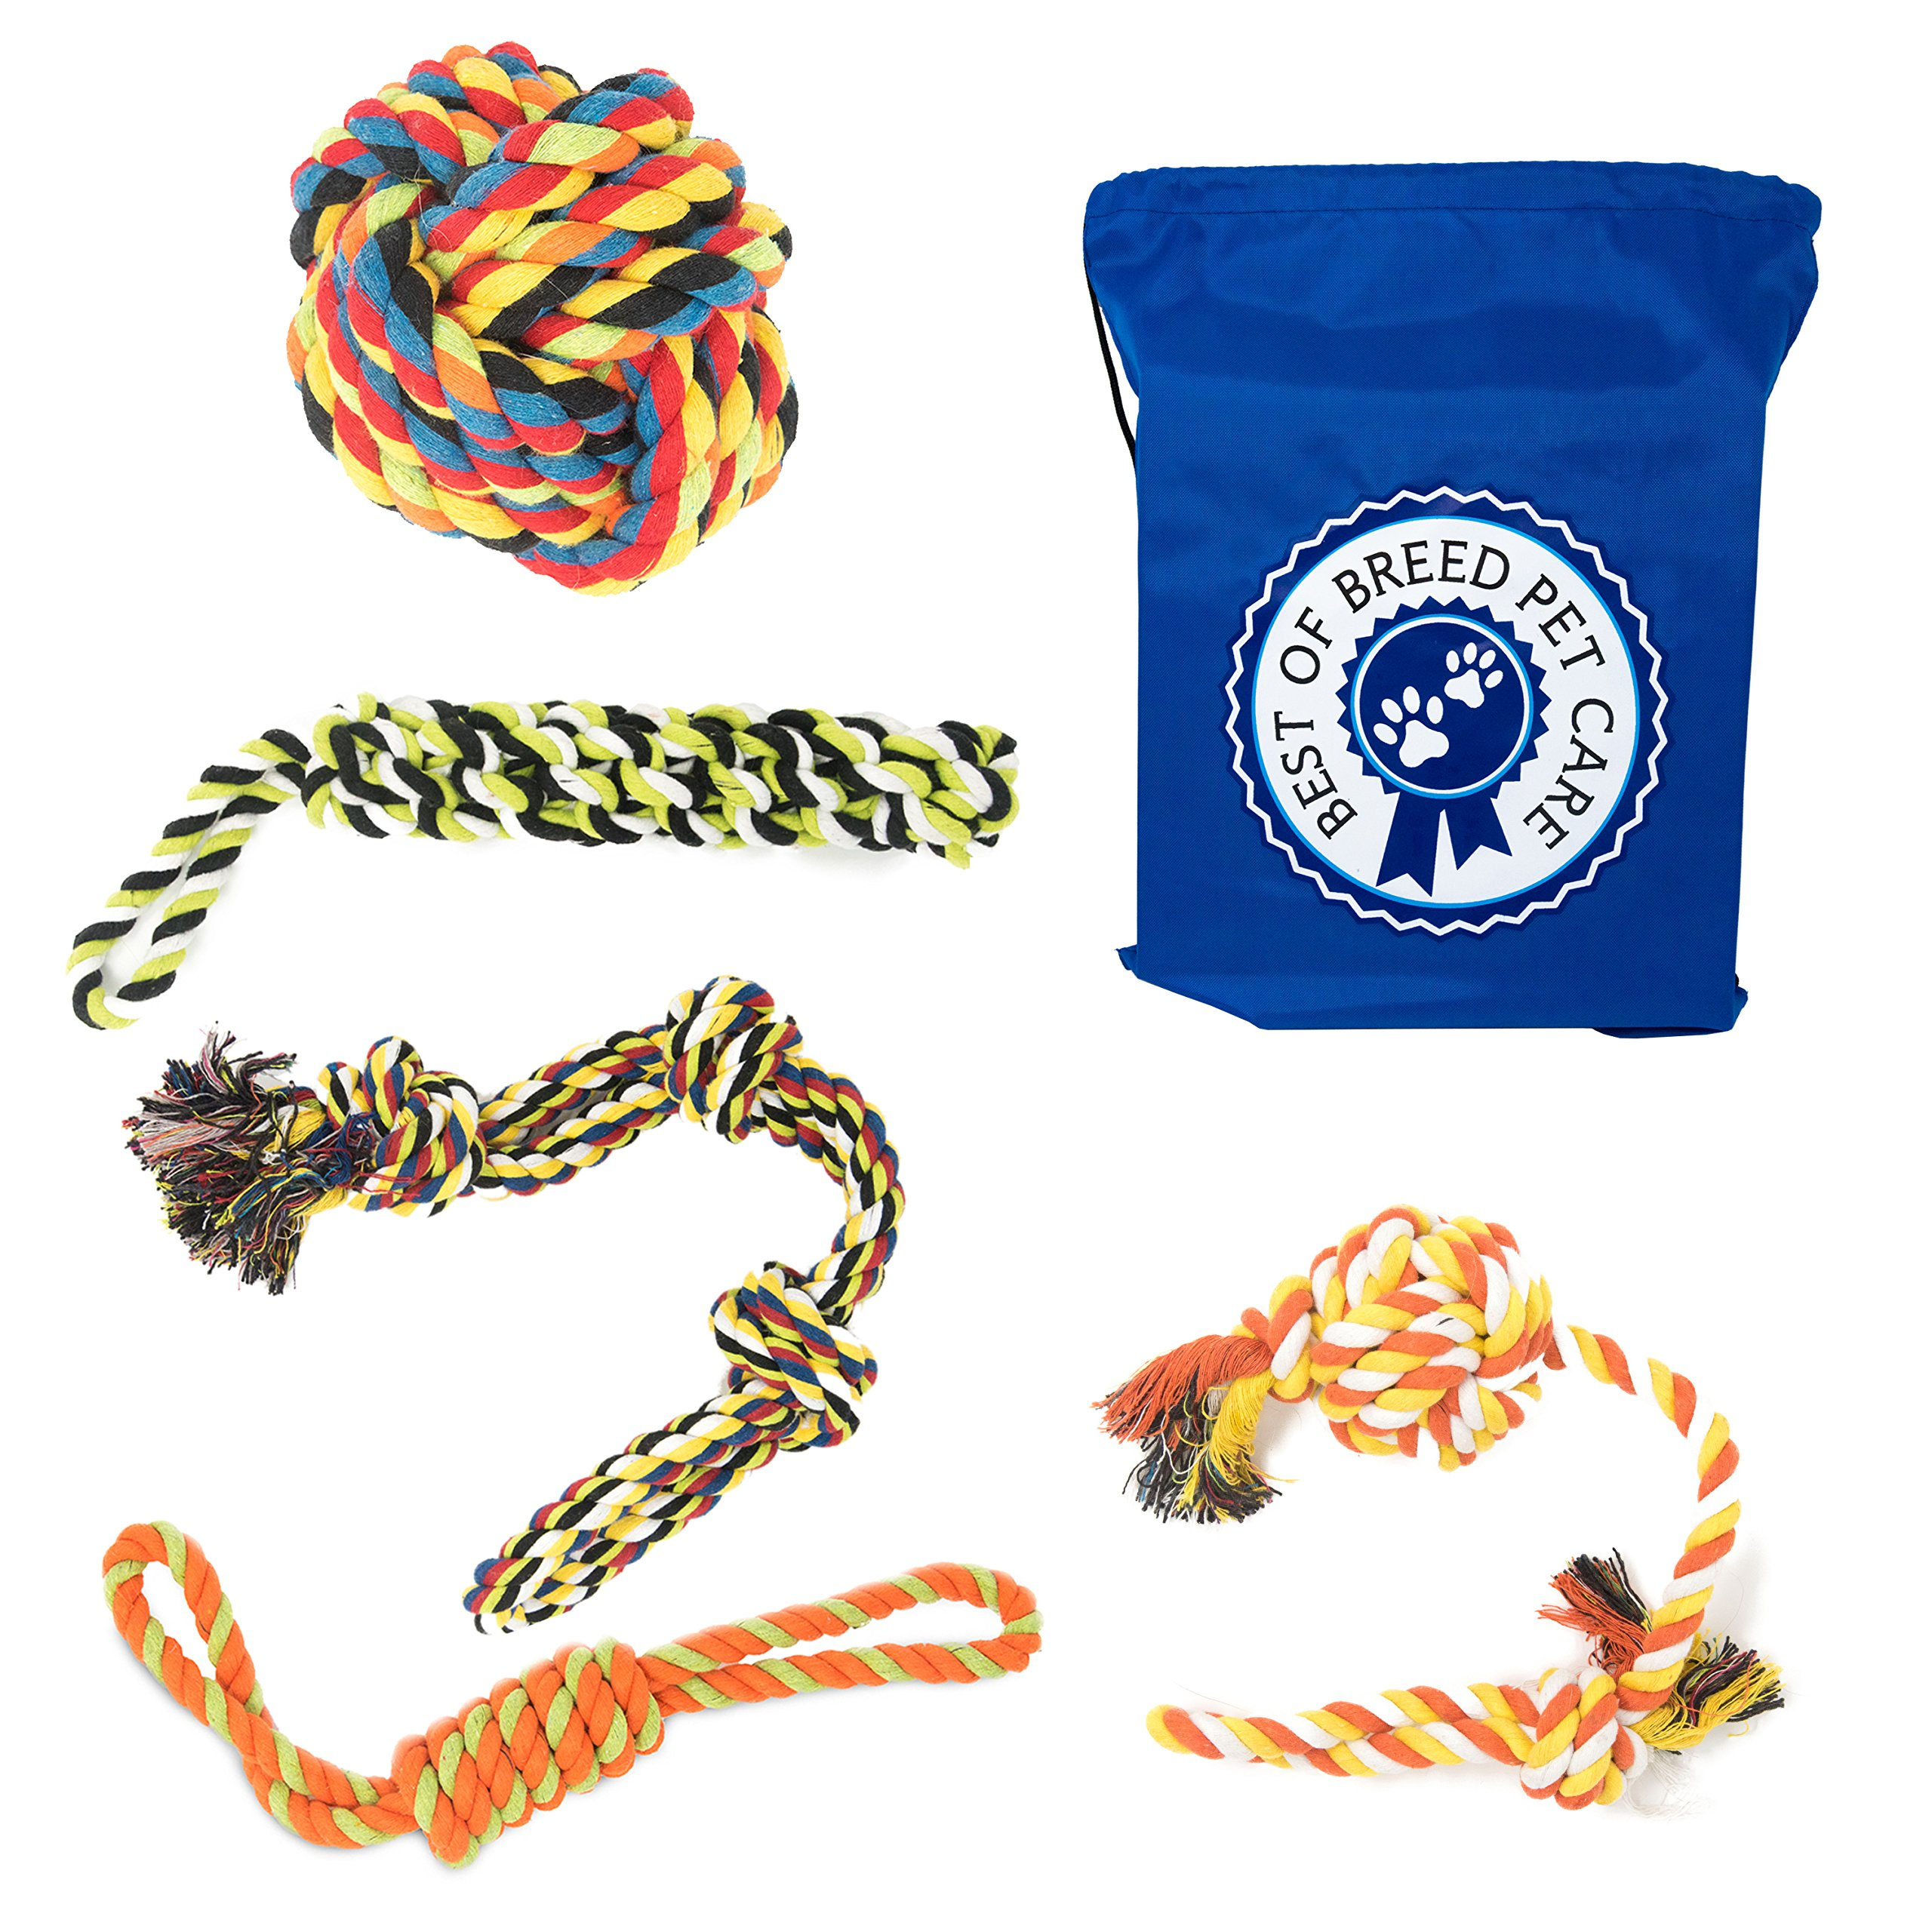 Dog Rope Toys for Large & Extra Large Dogs, 5 Heavy Duty Chew Toys for Aggressive Chewers, Ideal for Teething & Interactive Play, 6 Pack Including Sling Sack Bag, Multicolor